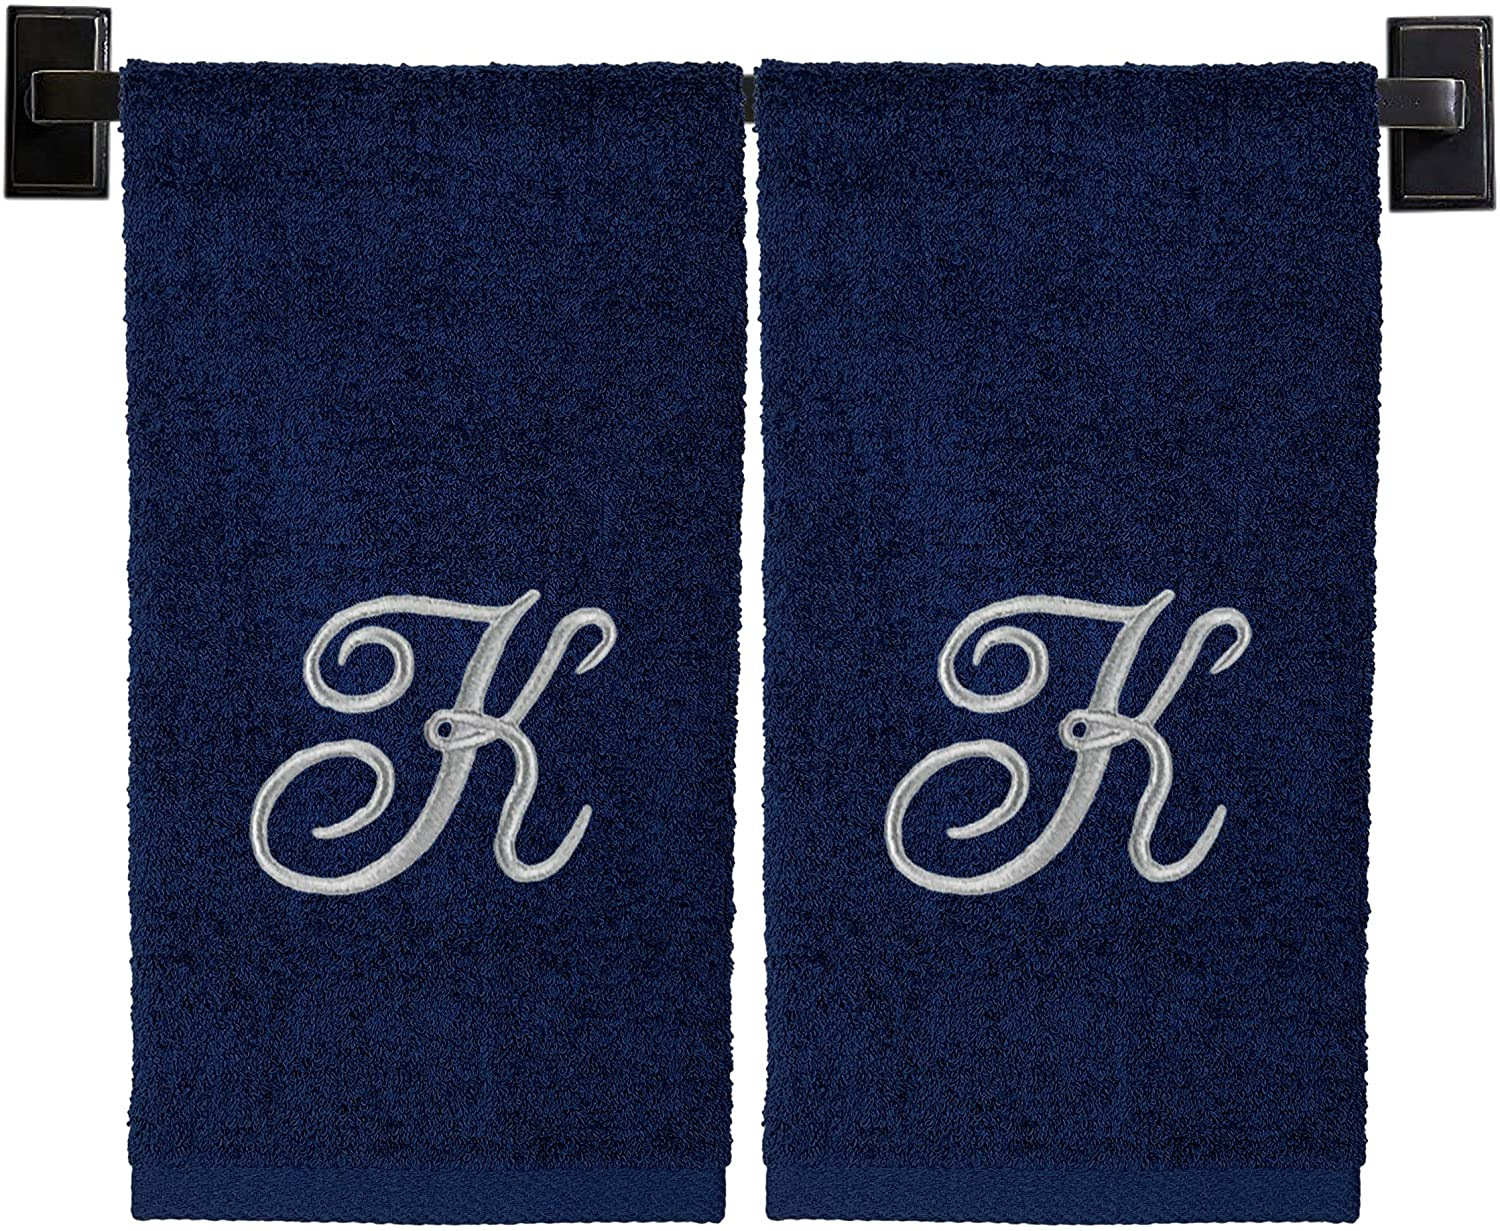 Monogrammed Hand Towels, Set of 2, 100% Cotton, Made in USA, Luxury Hotel Quality, Embroidered Silver Thread Script Monogram